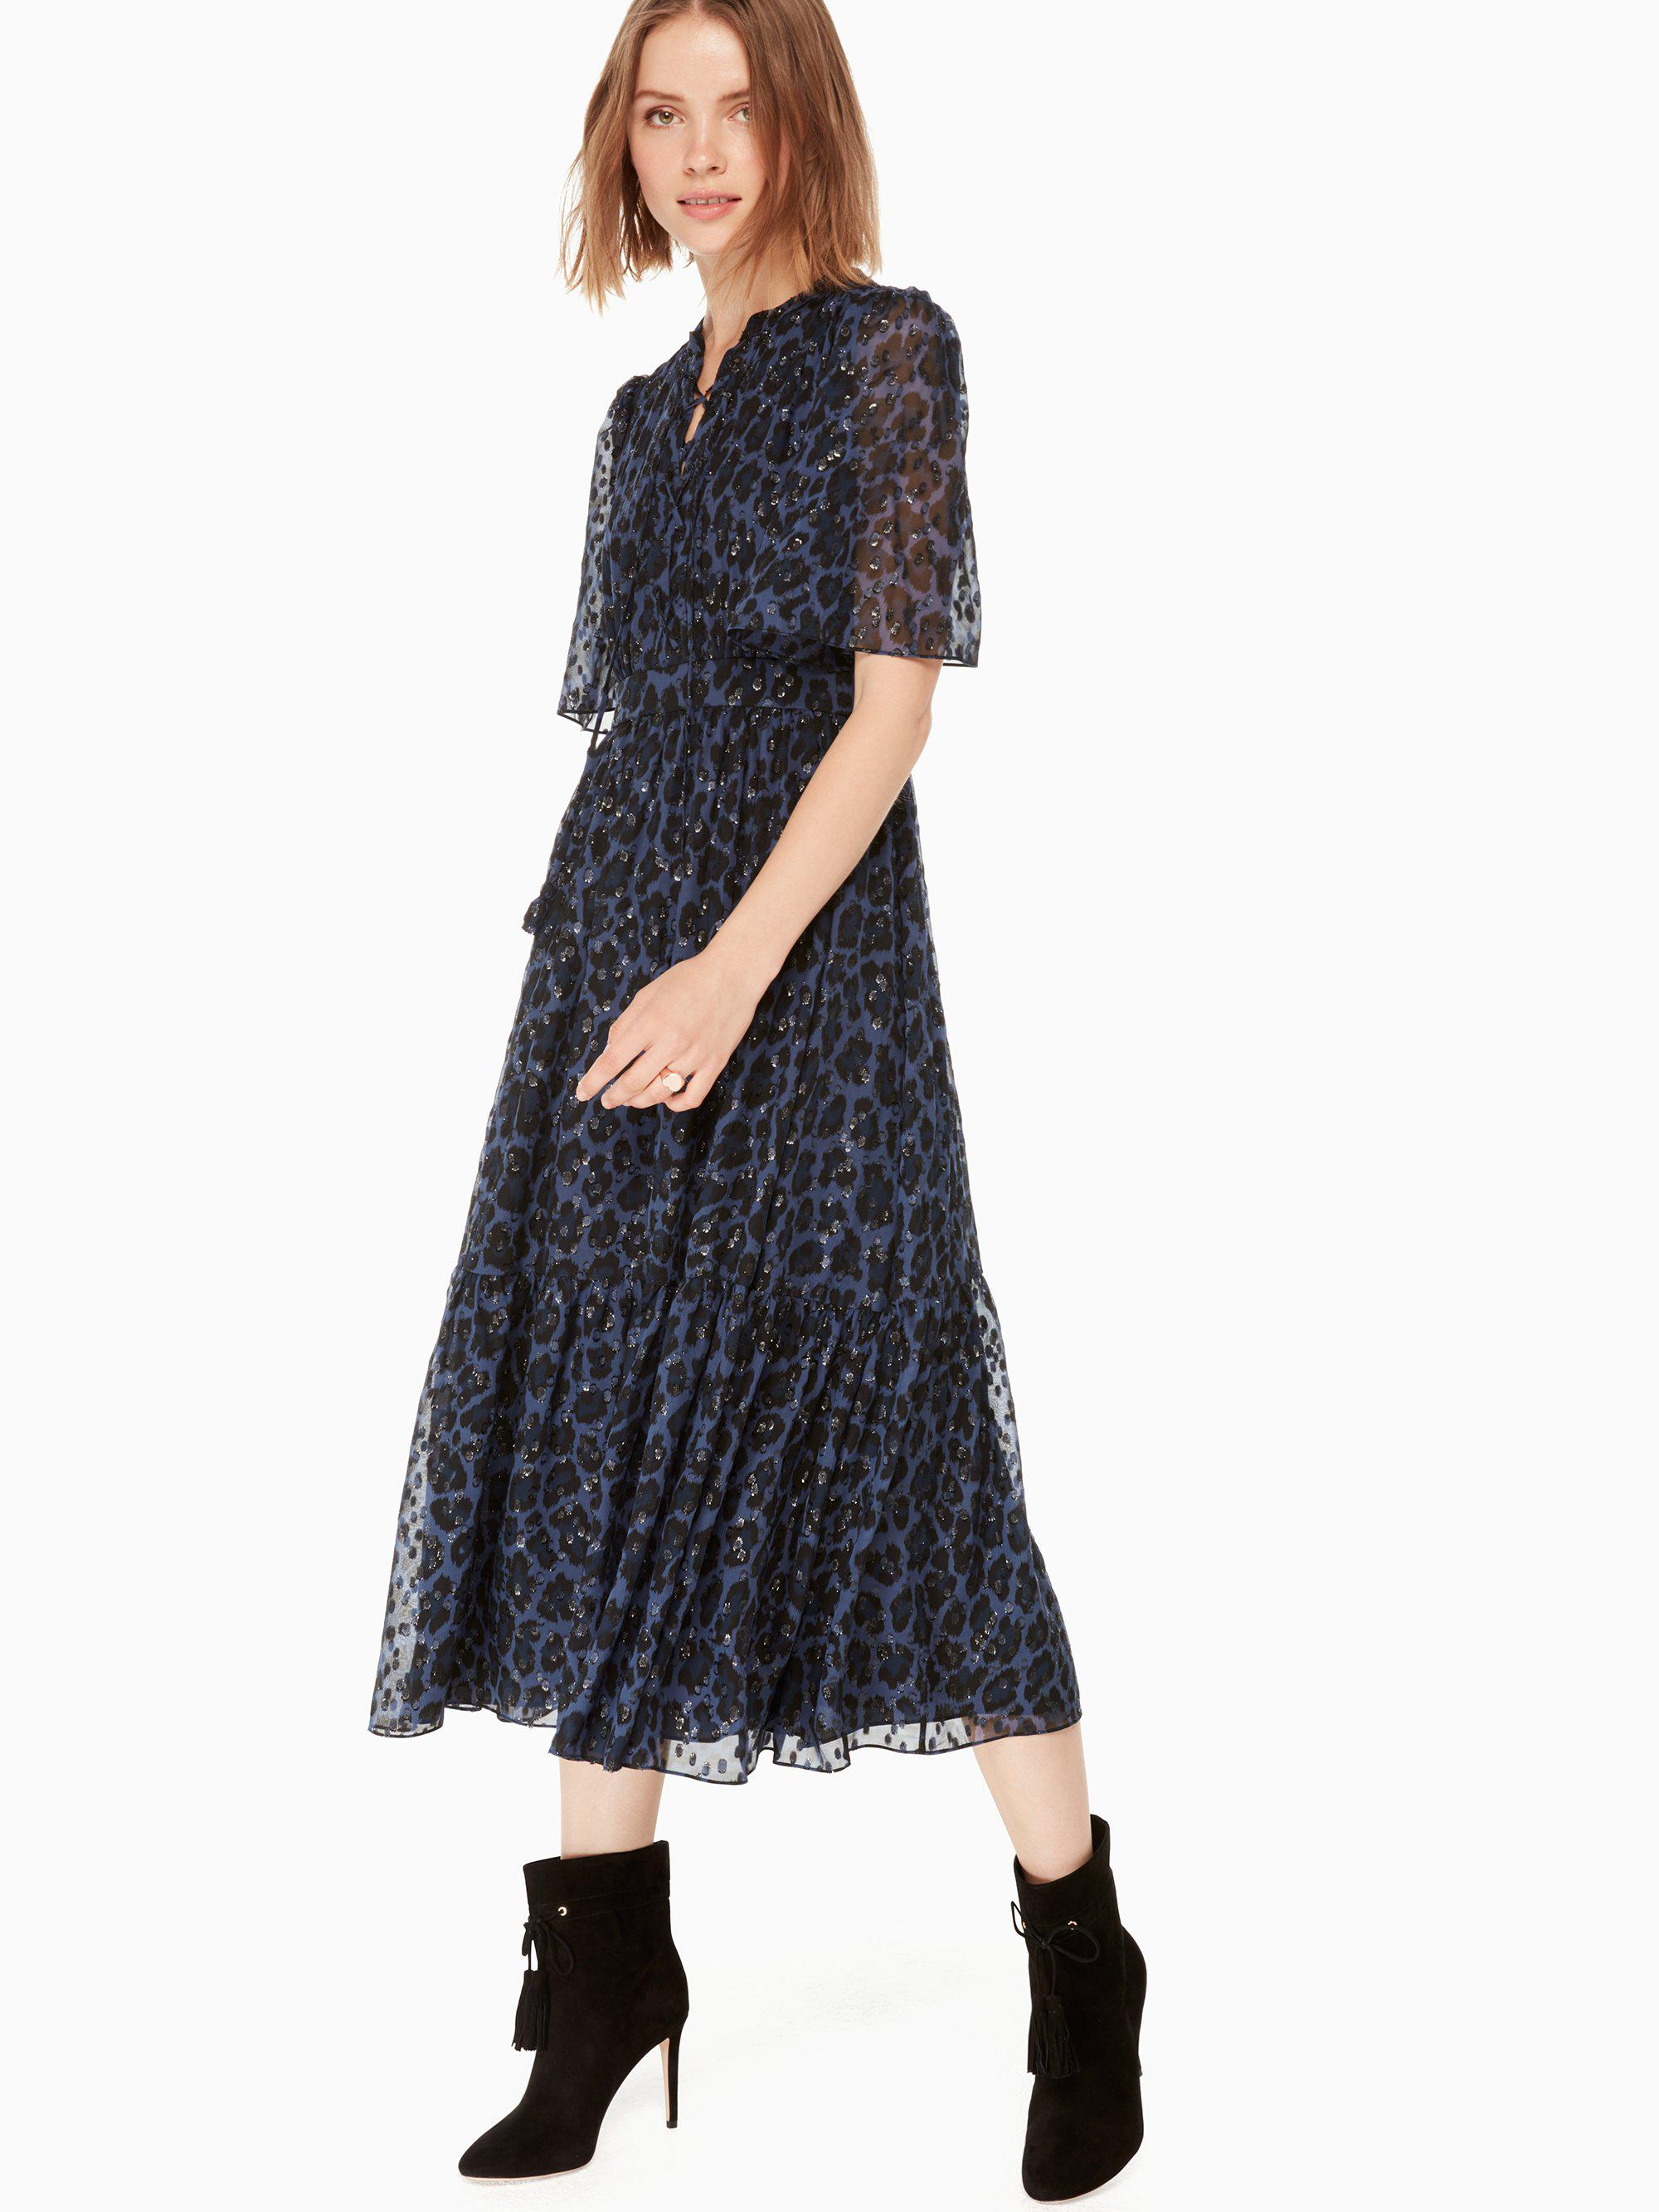 ab735b430a Lyst - Kate Spade Leopard-print Clip Dot Midi Dress in Blue - Save 20%